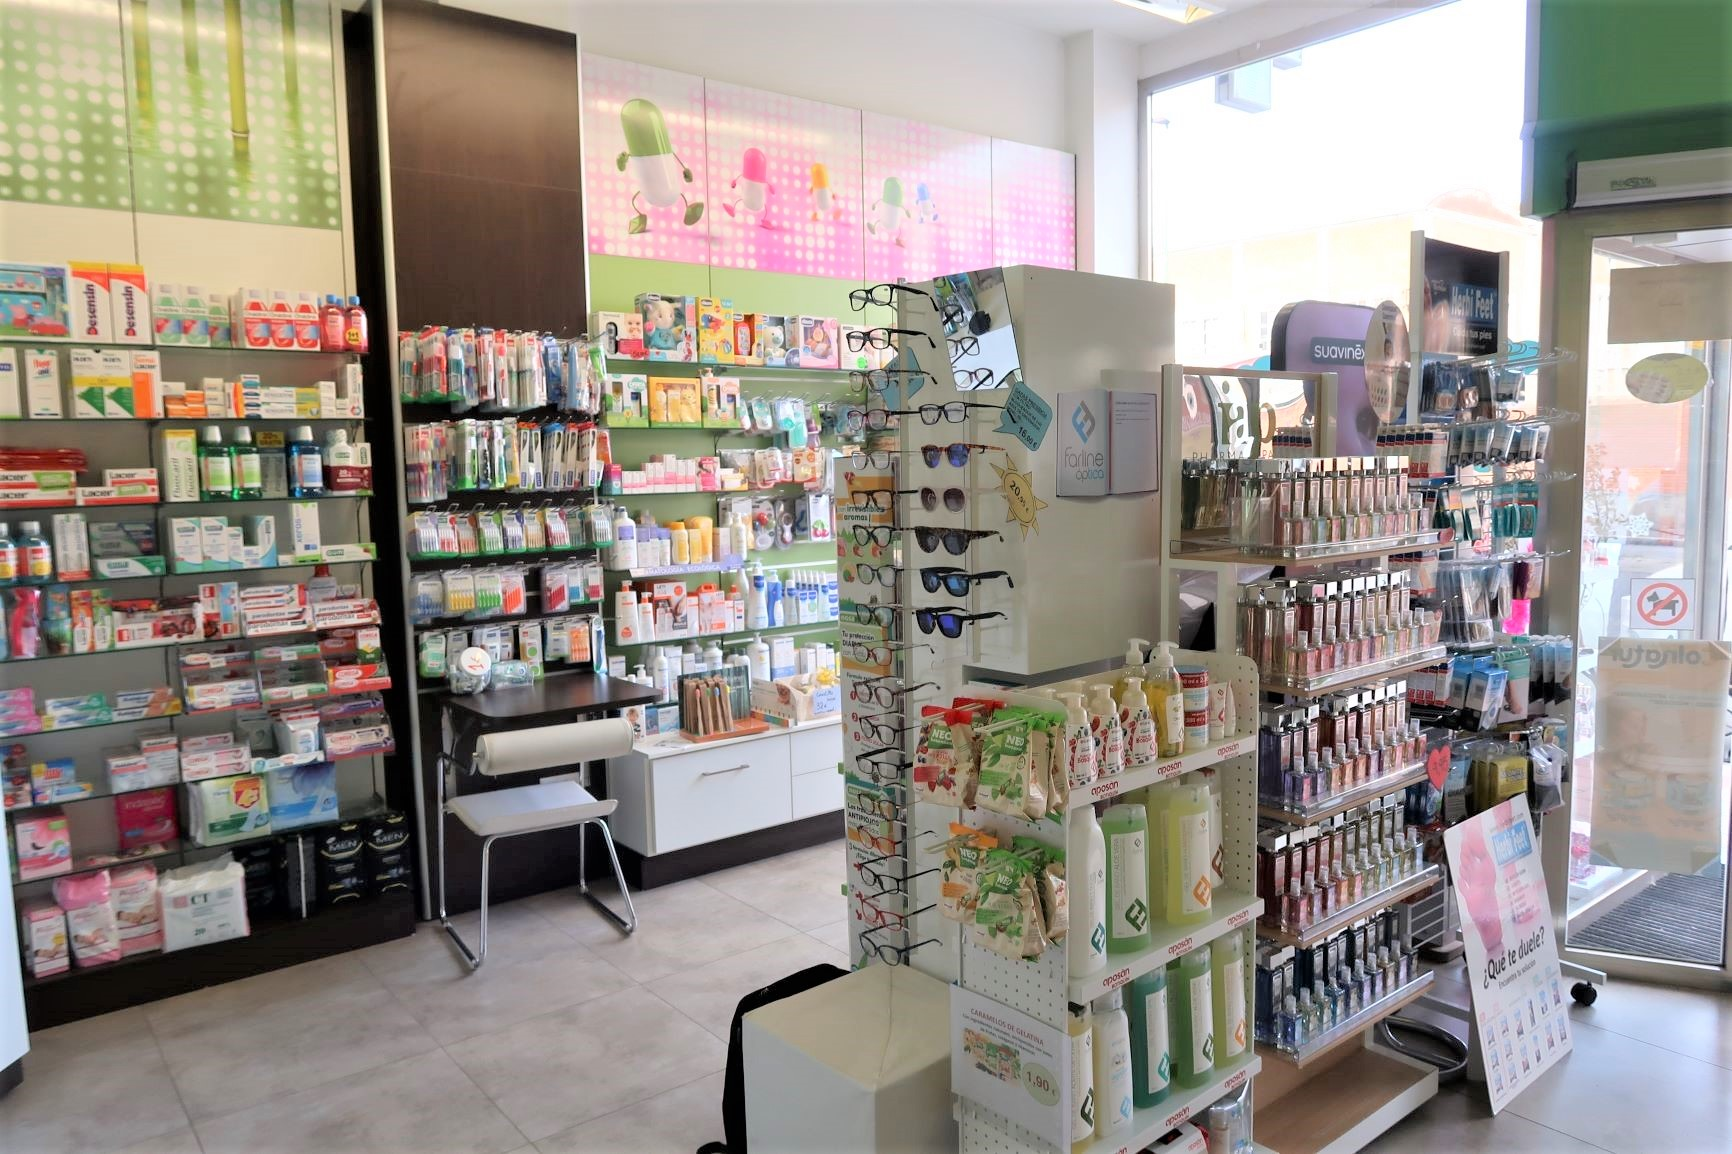 Farmacia FARNESIO 29 Farmacia